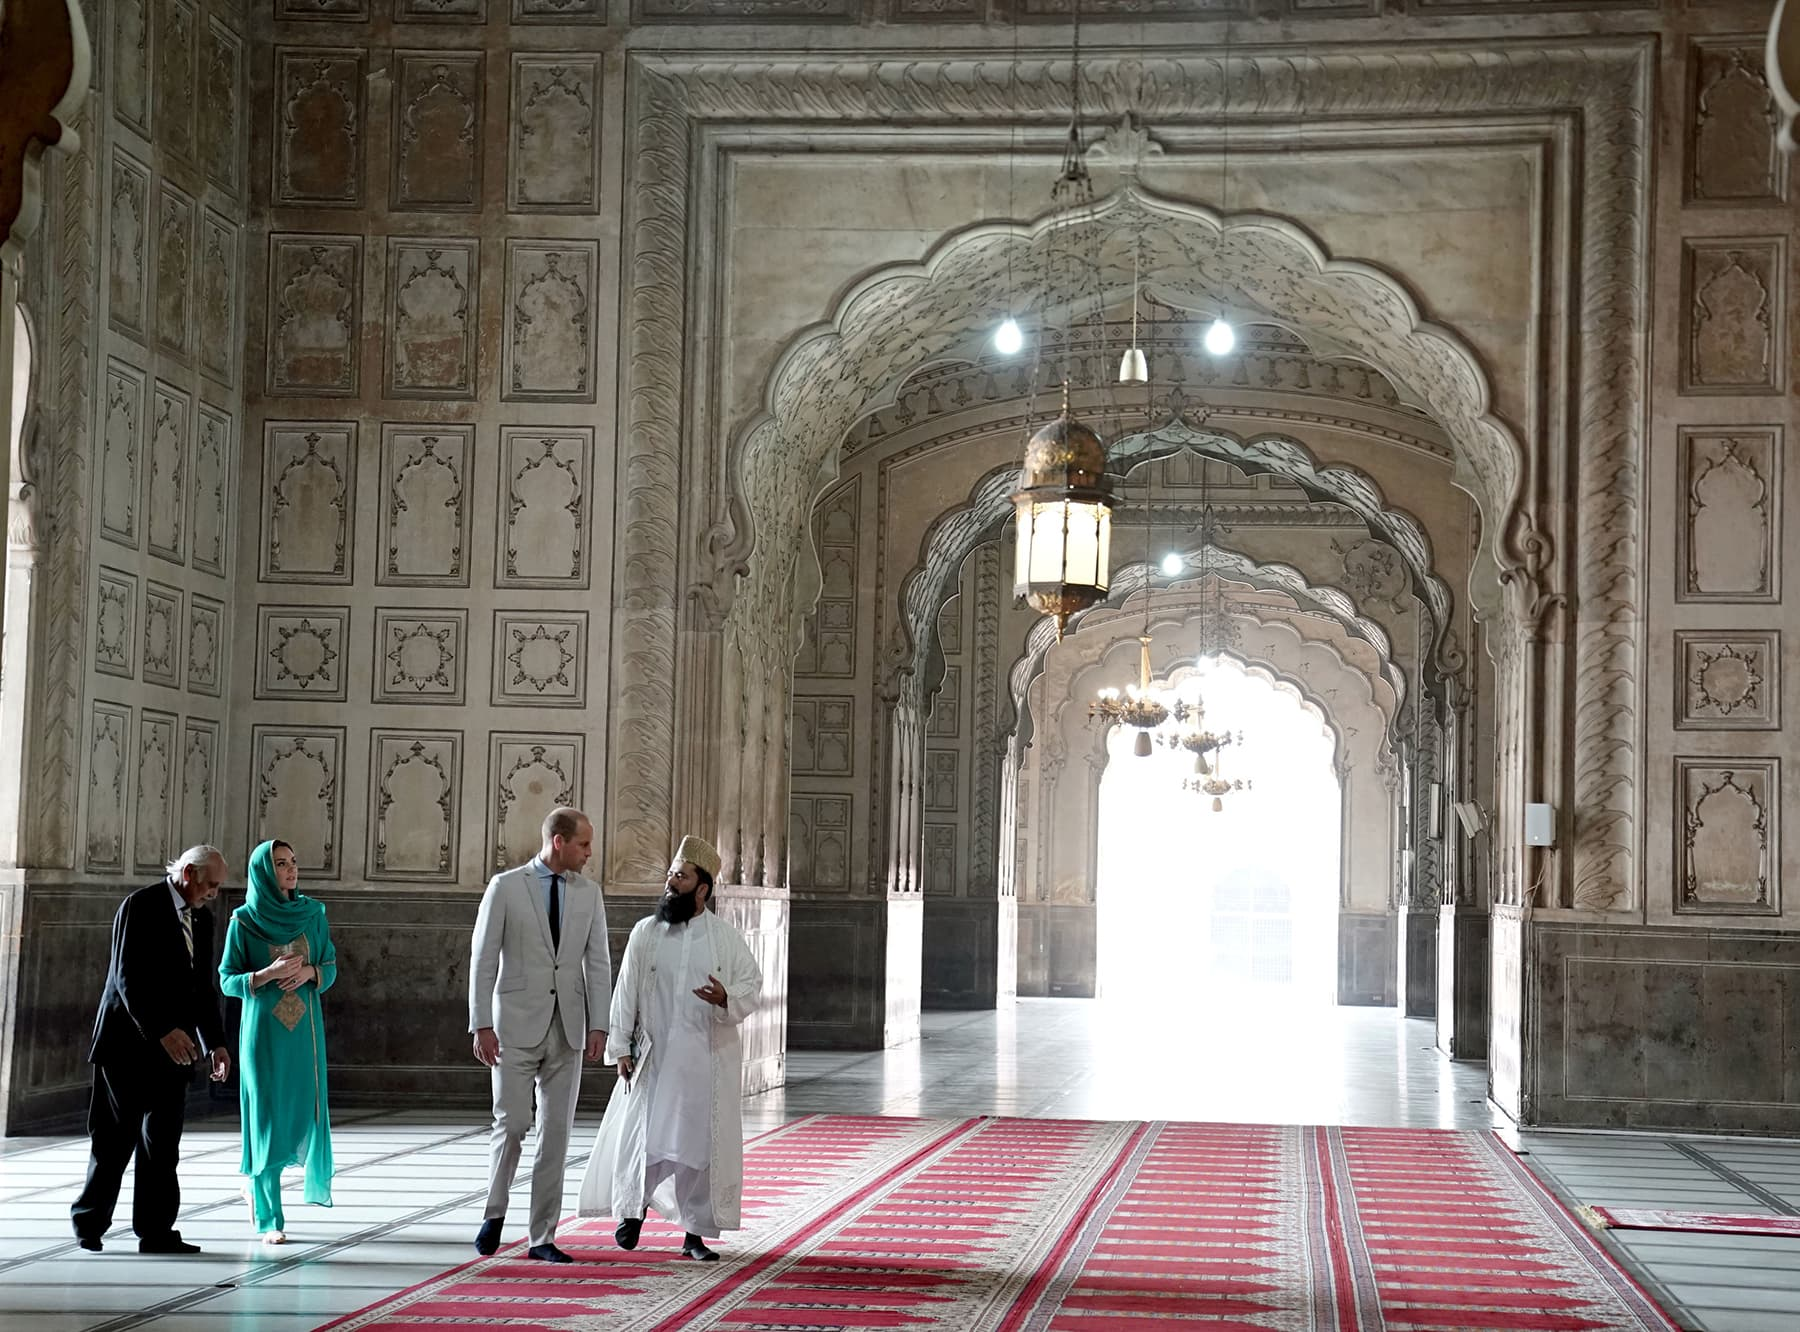 William and Catherine are shown the inside of the Badshahi Mosque in Lahore on October 17. — Reuters